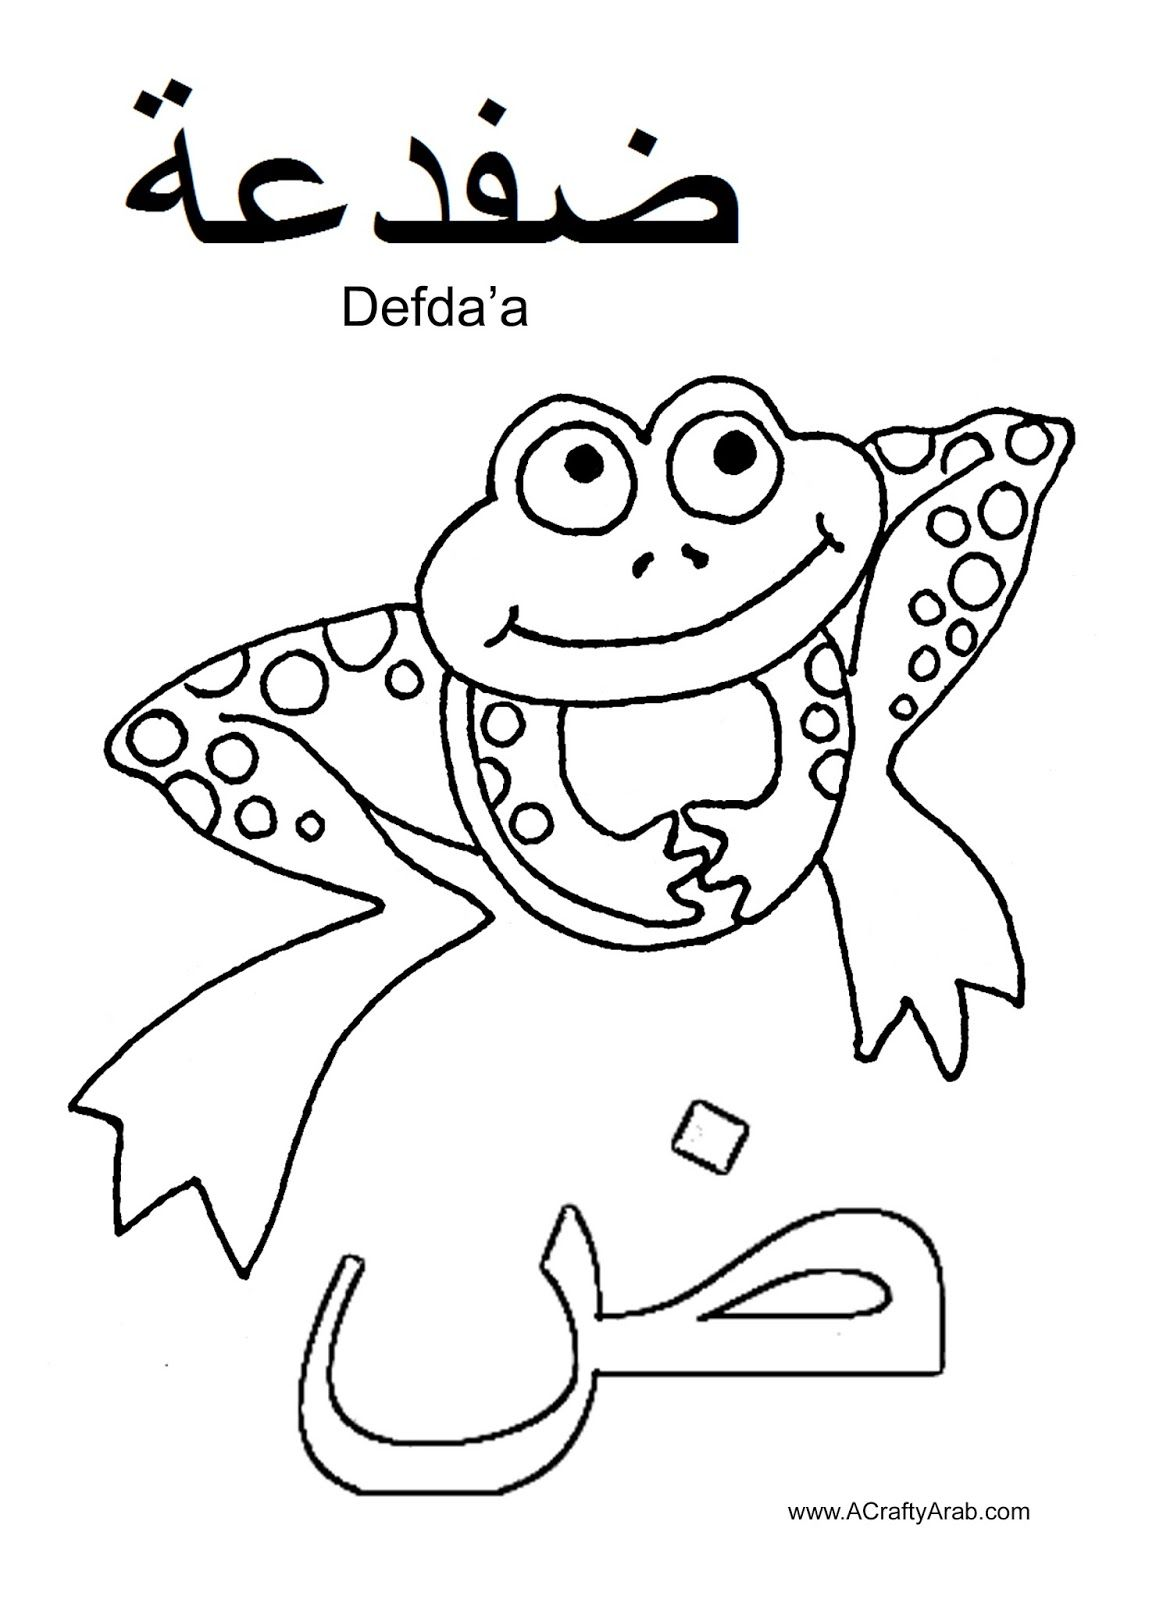 Arabic Alphabet Coloring Pages Dhad Is For Defda A